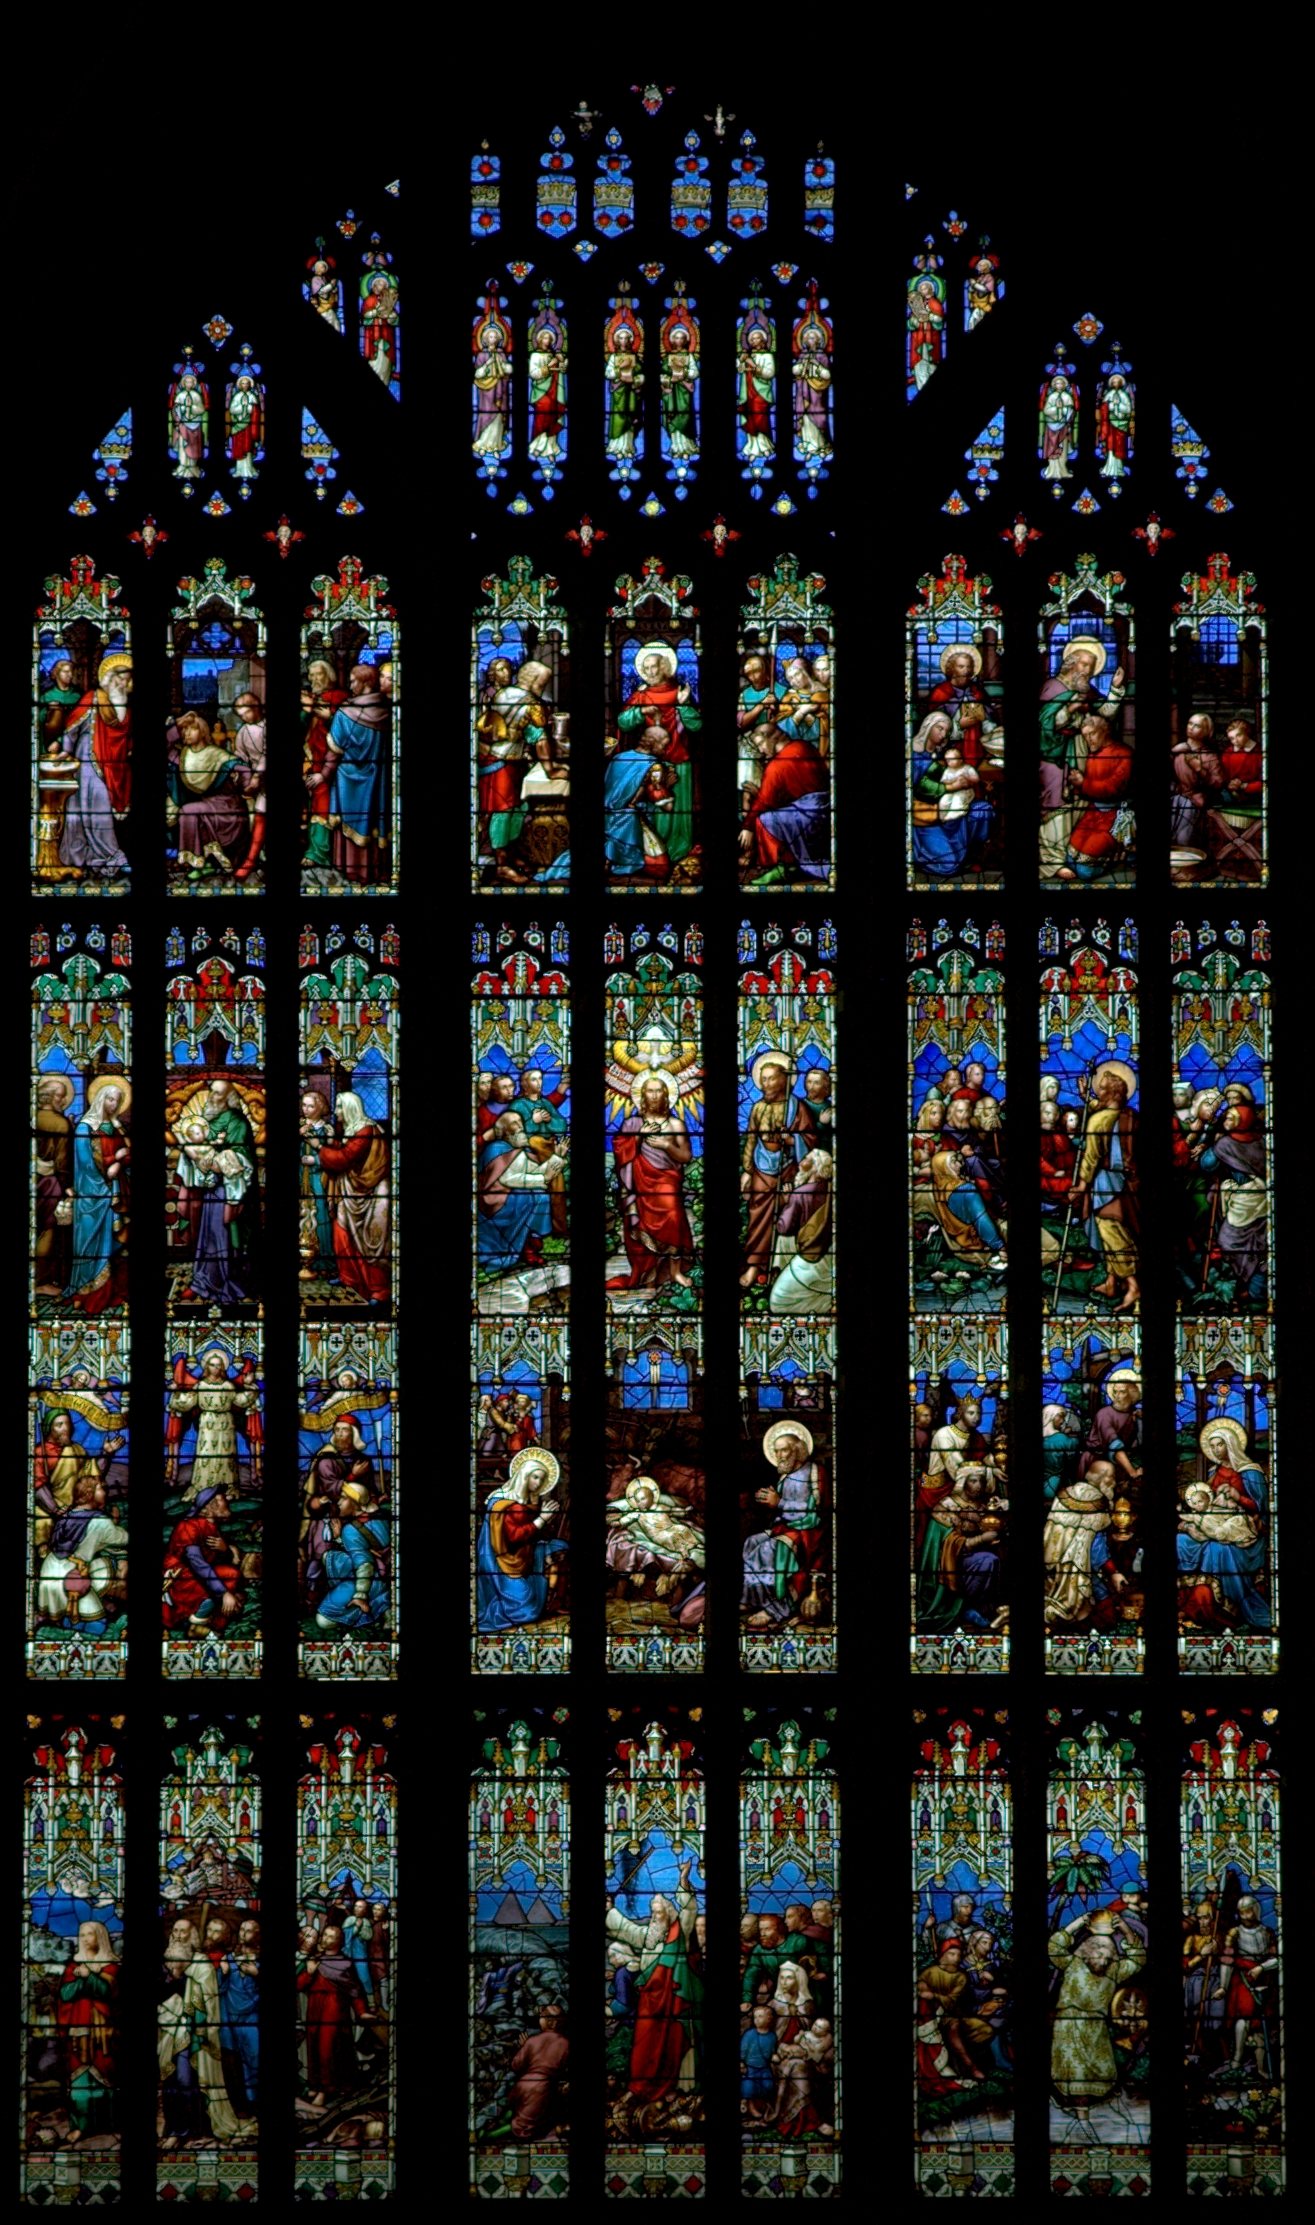 stained glass in gloucester cathedral best viewed motawara kaiomurz